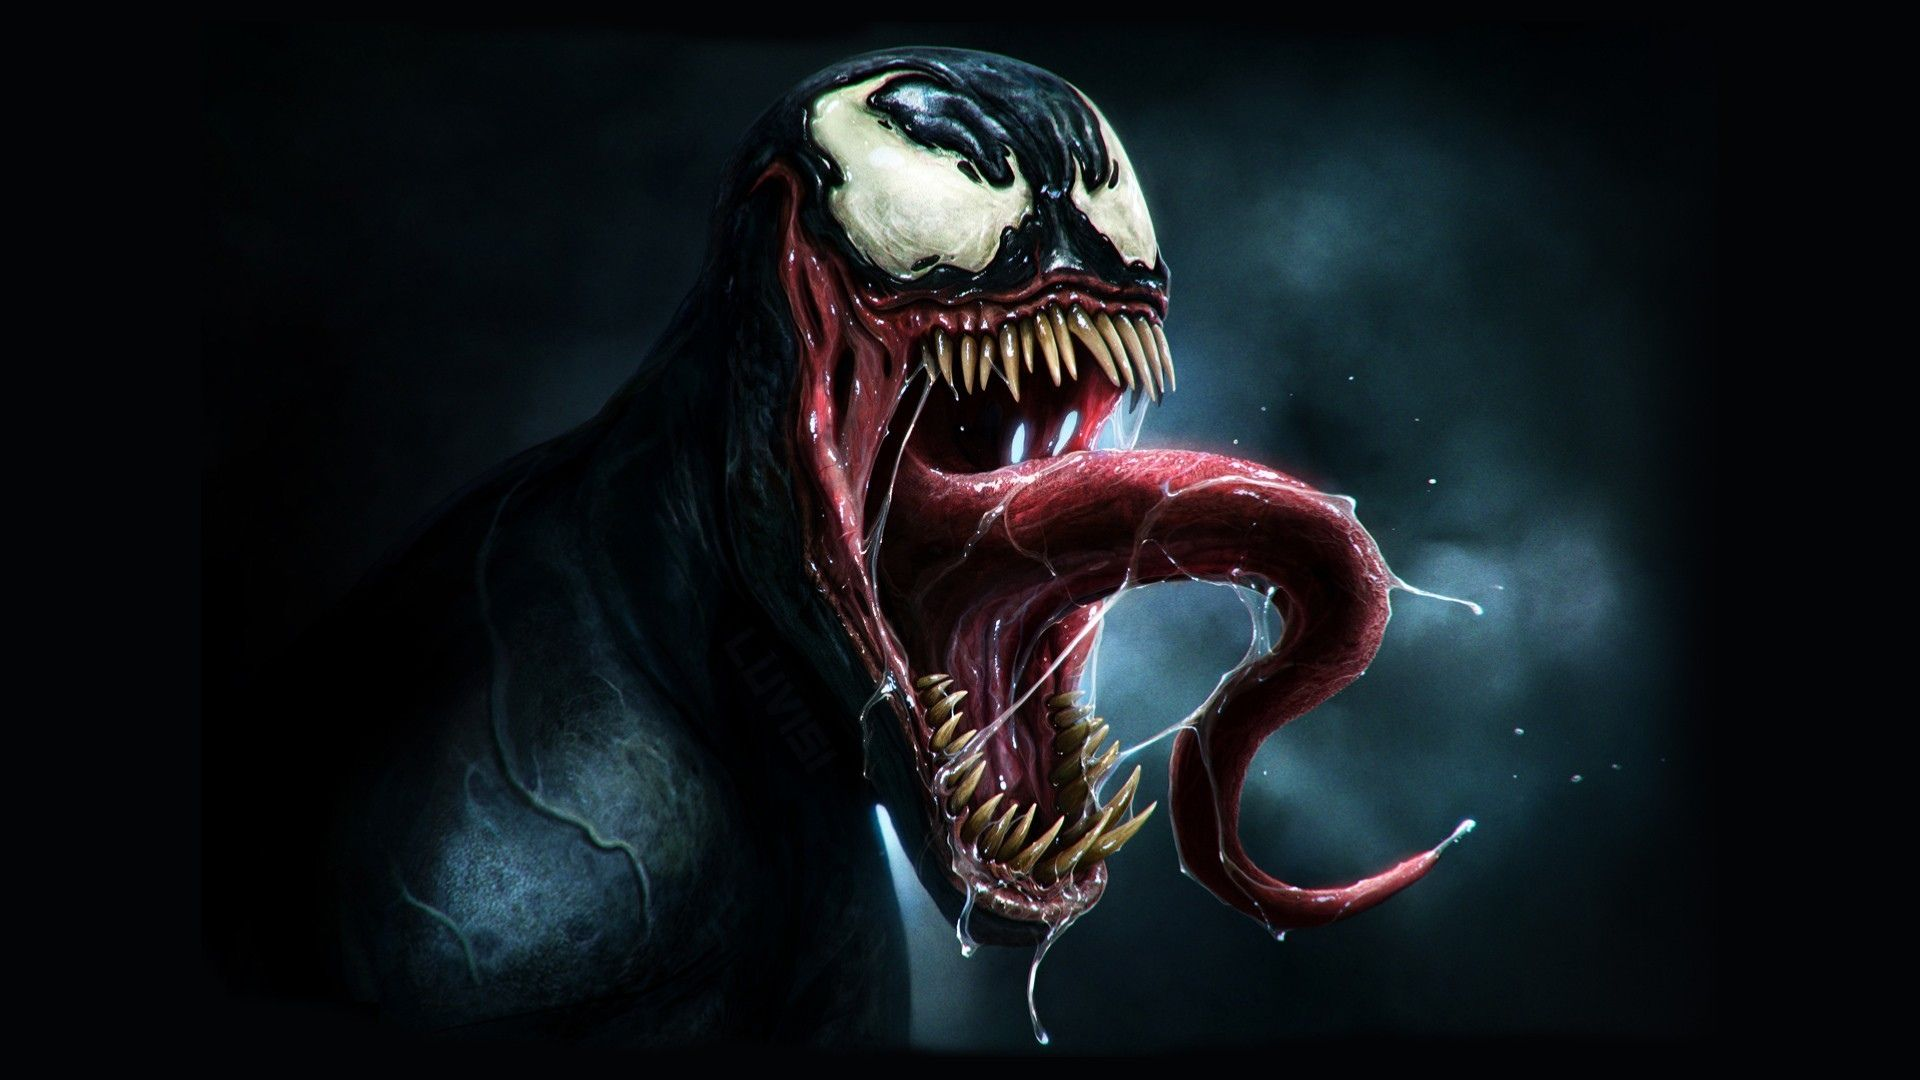 Spiderman Venom Wallpaper For Android Kan Awesomeness